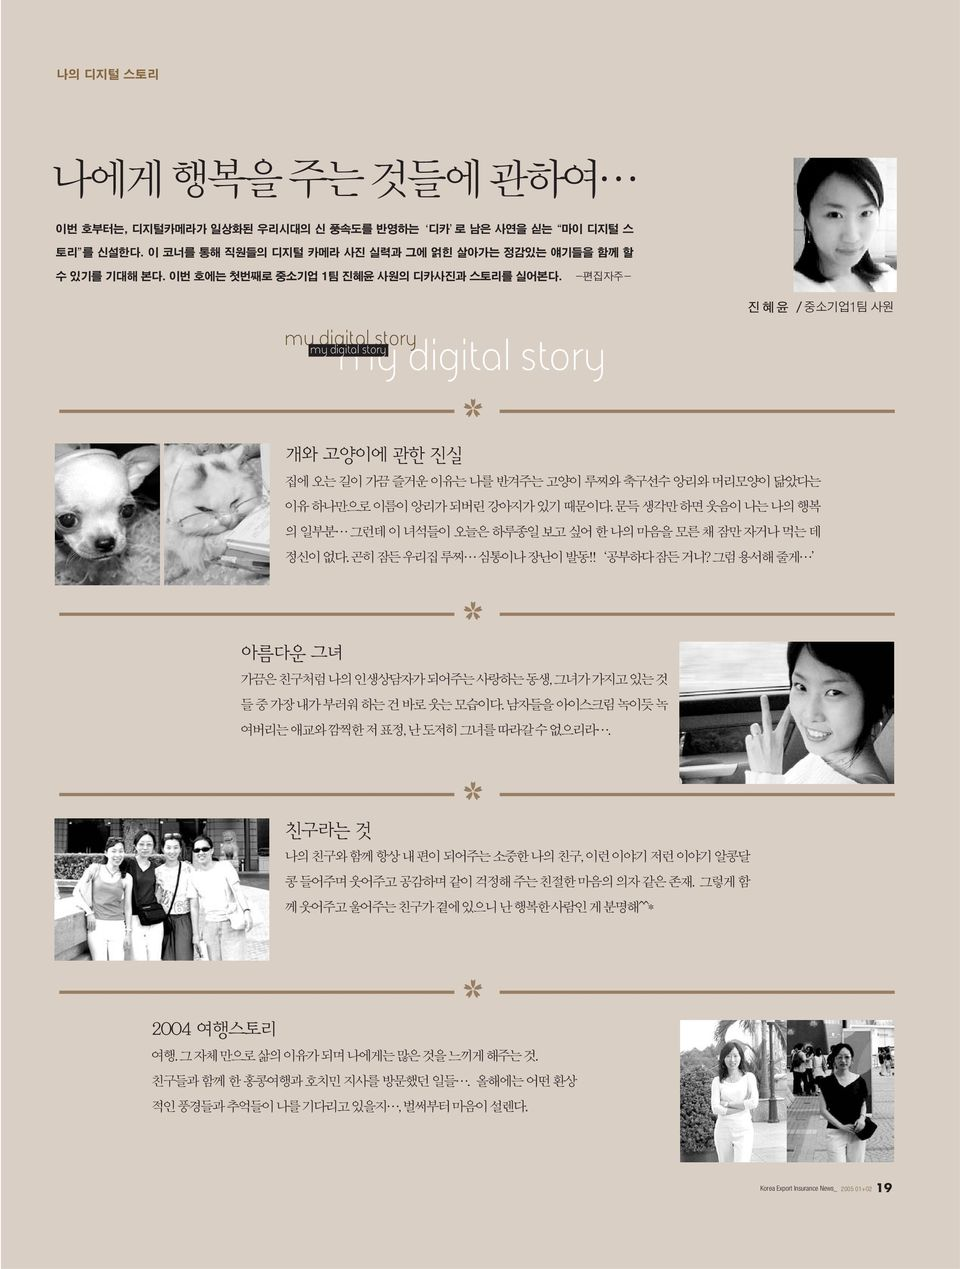 digital story Korea